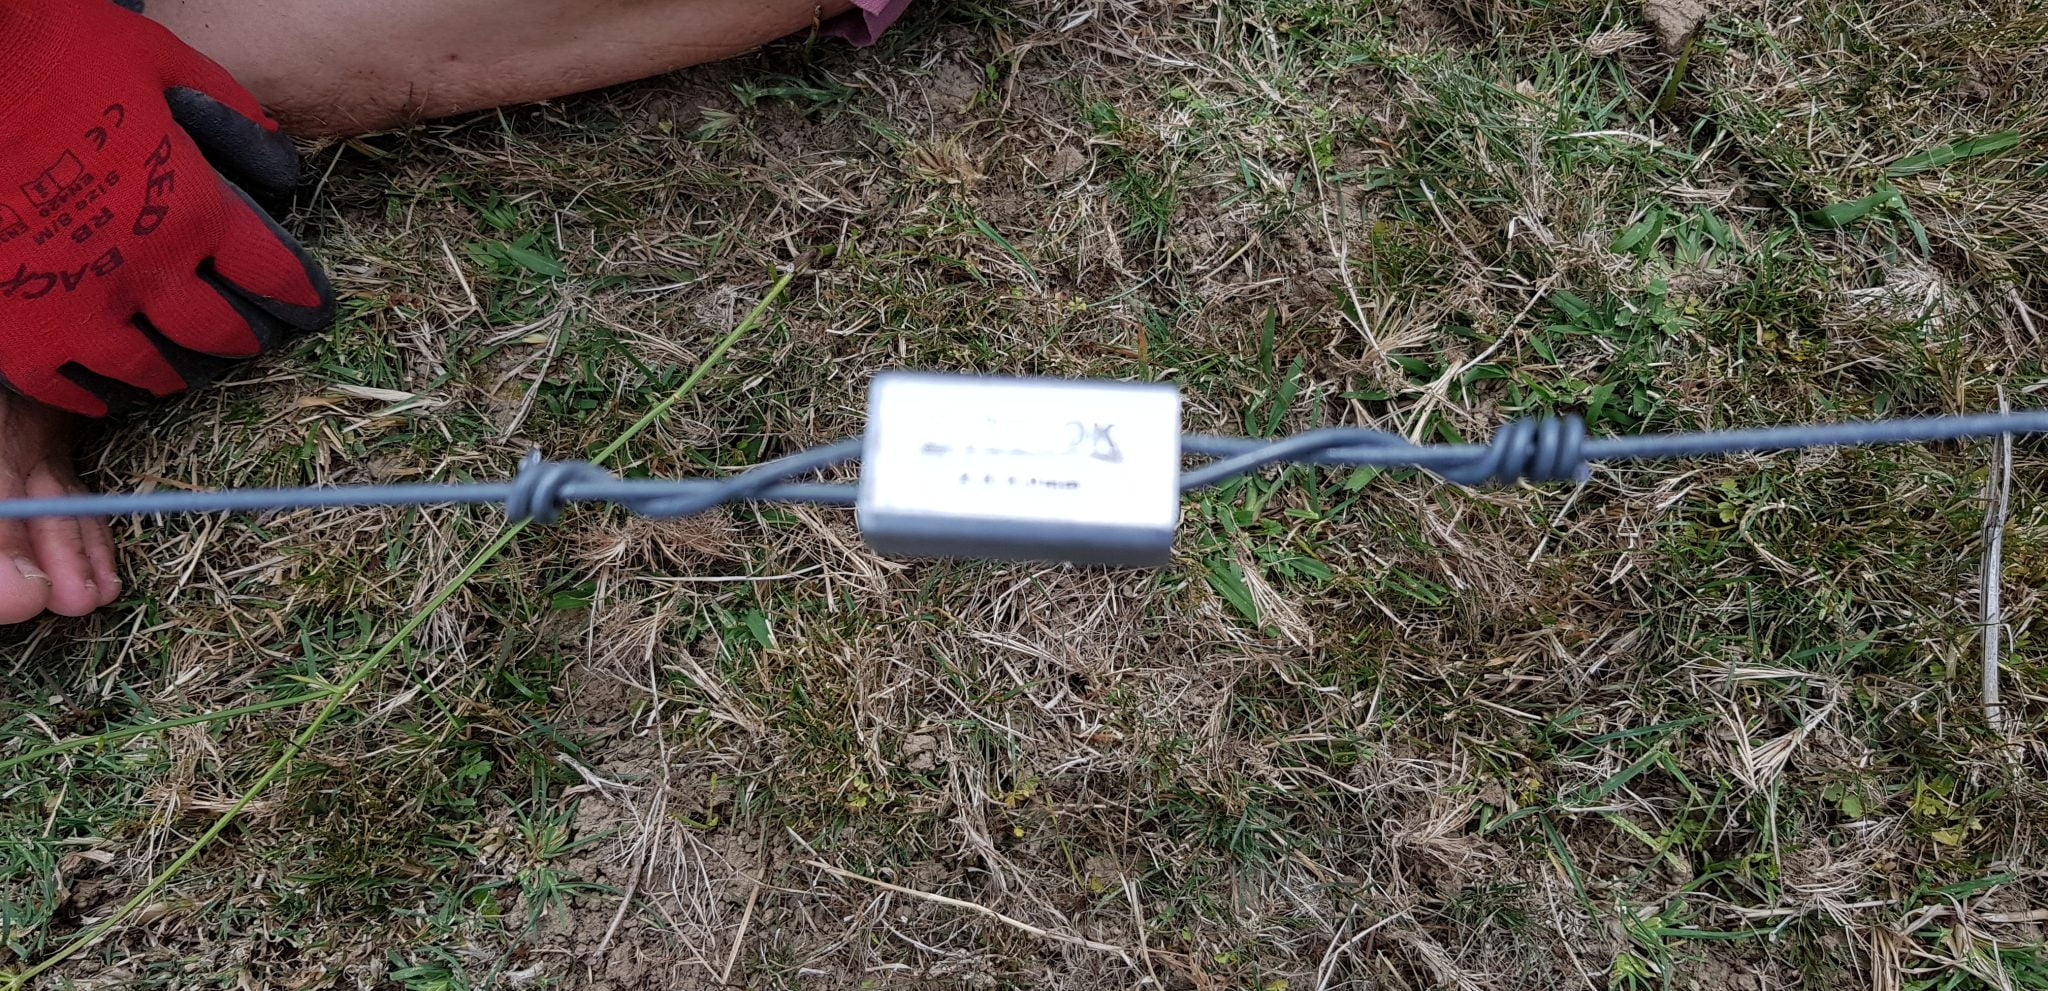 A wire connector